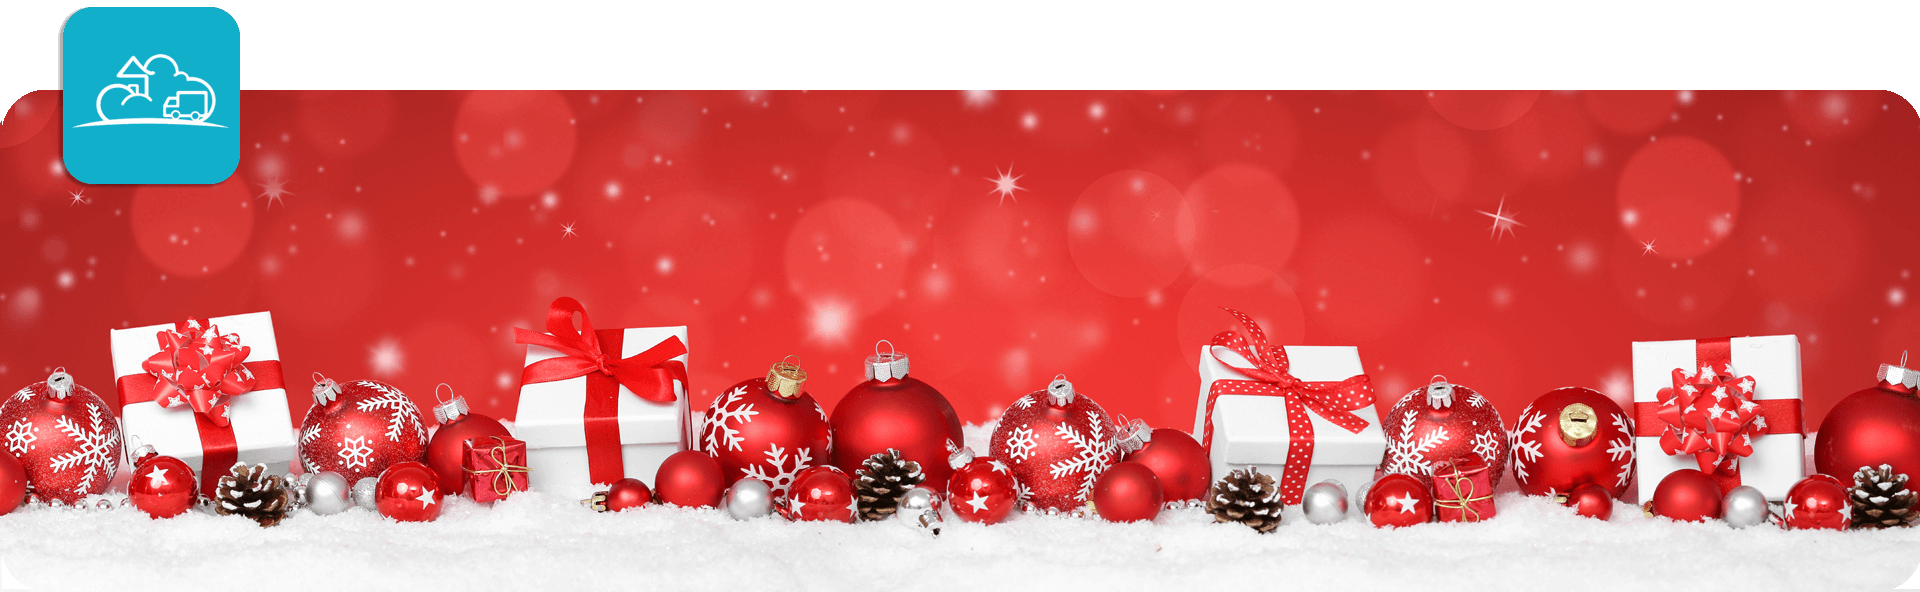 row of presents and baubles in white and red snowy christmas scene